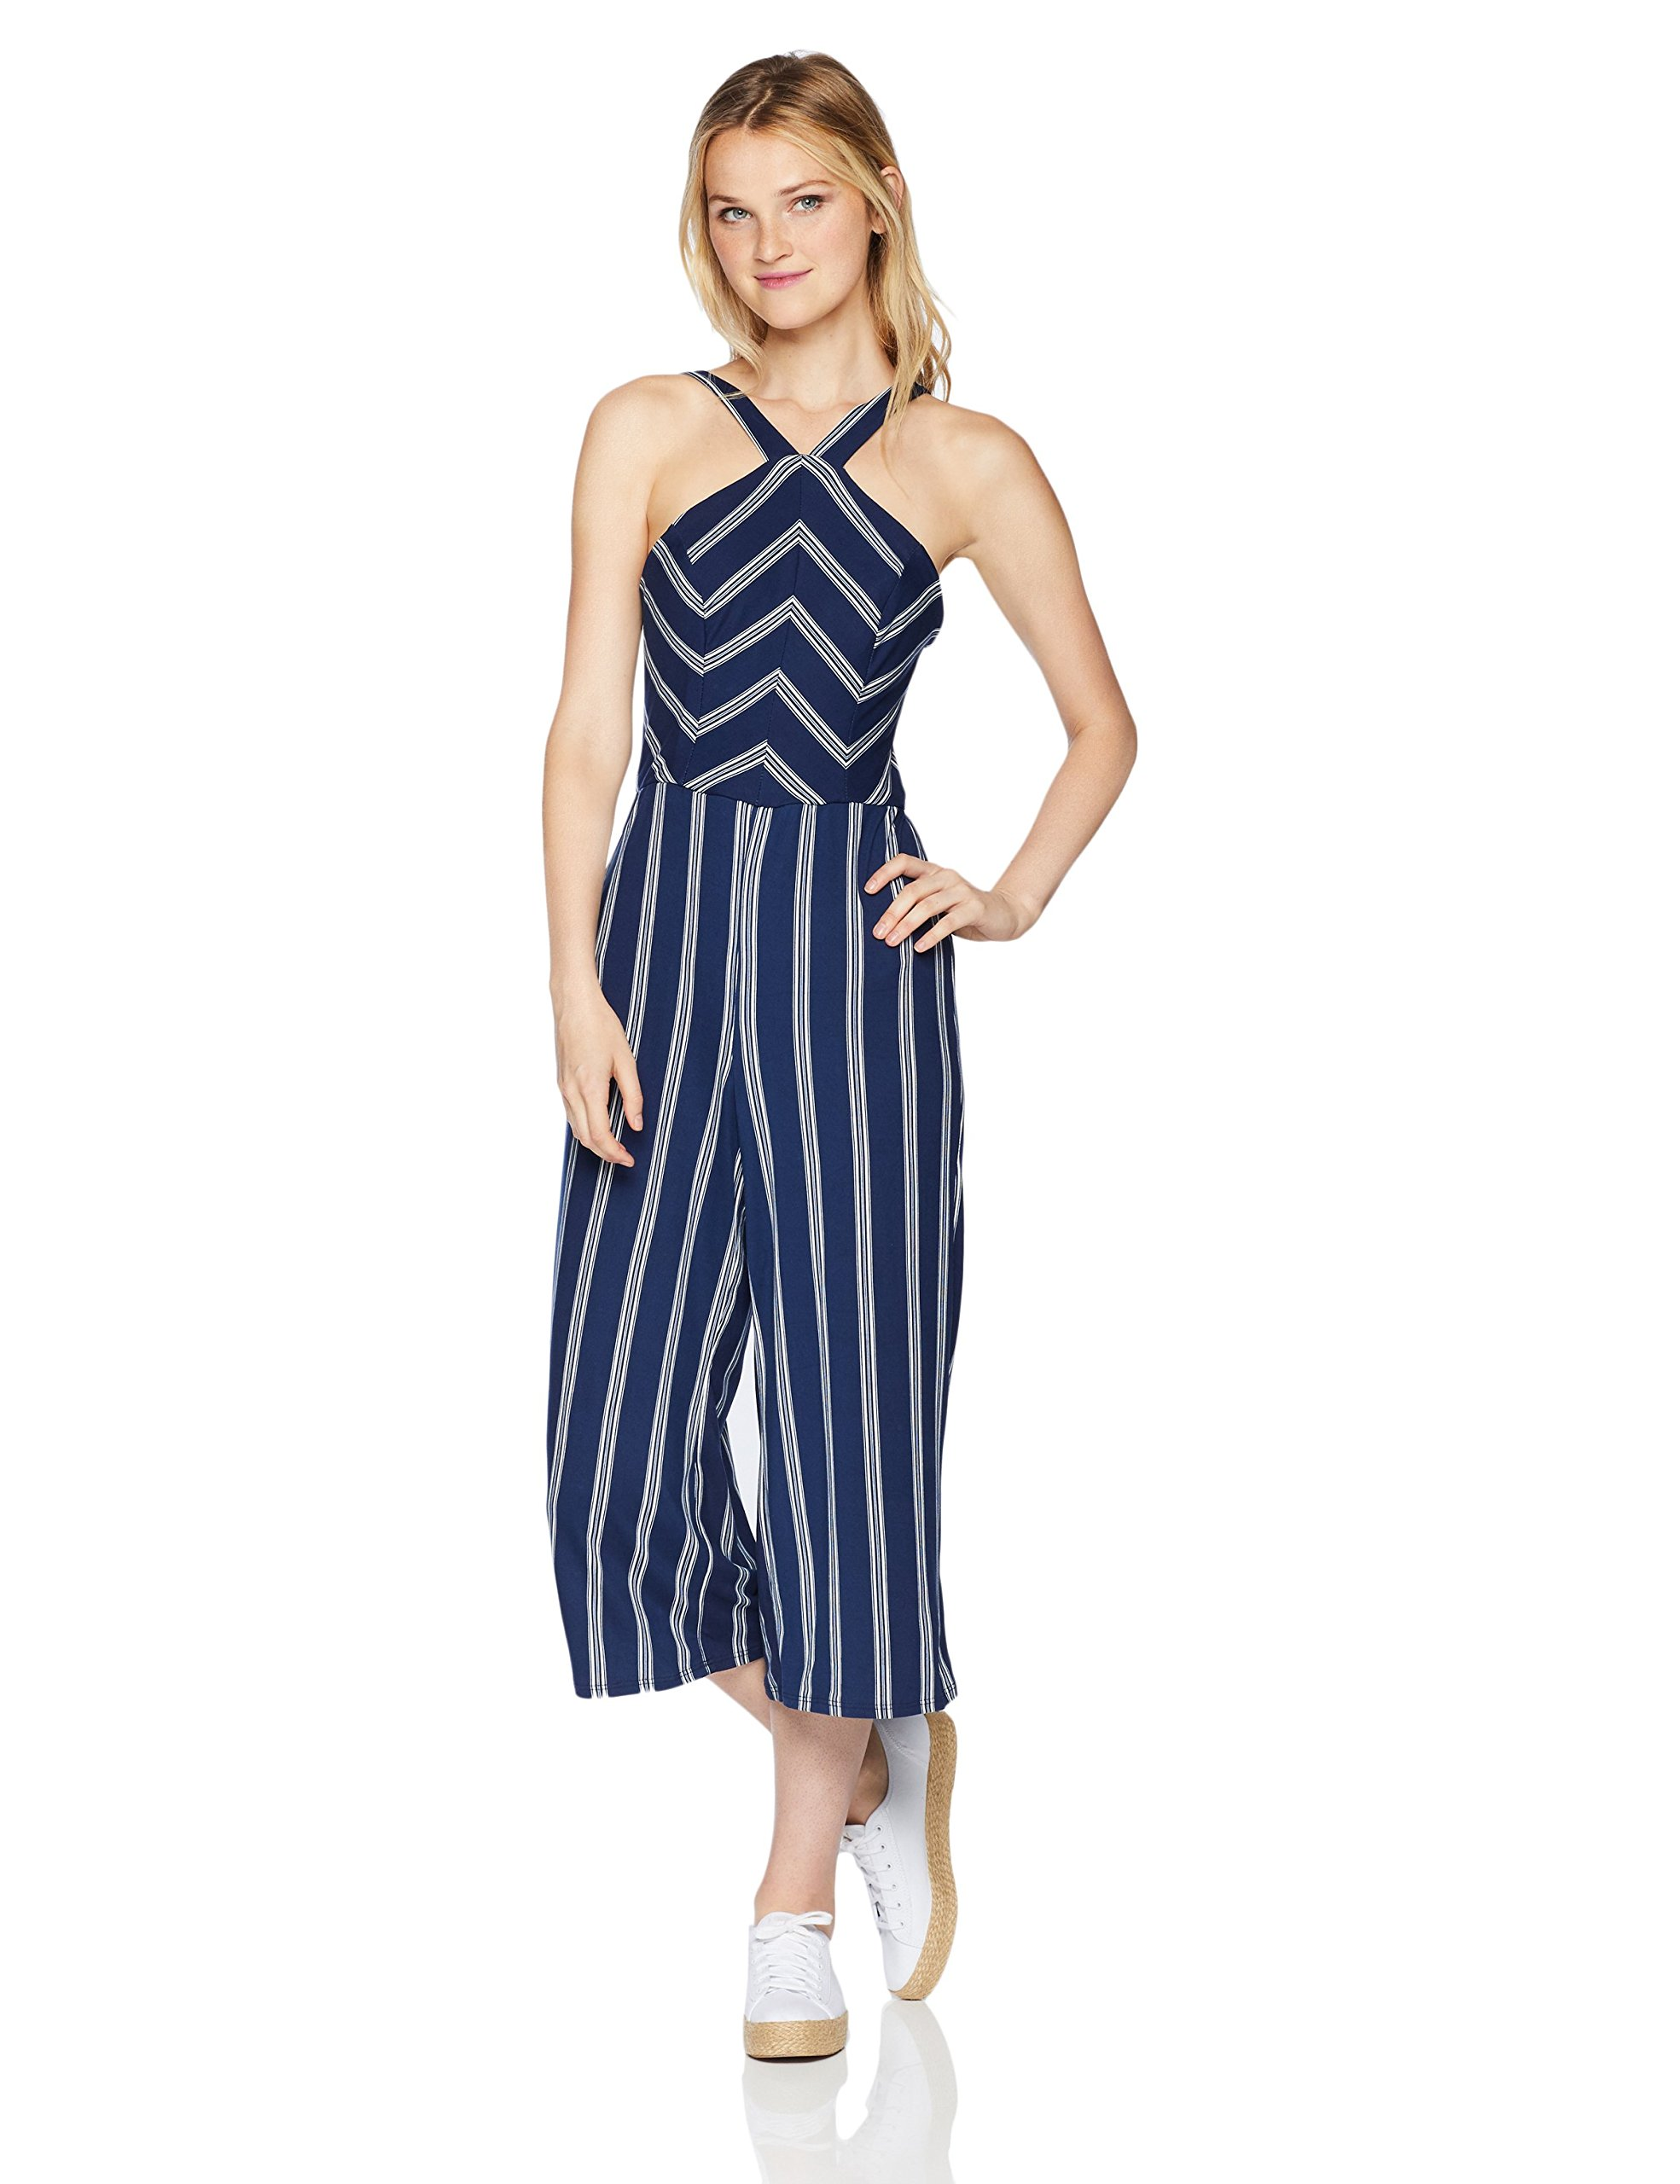 A. Byer Junior's Young Woman's Teen Full-Length Jumpsuit Romper, Navy Stripe, S